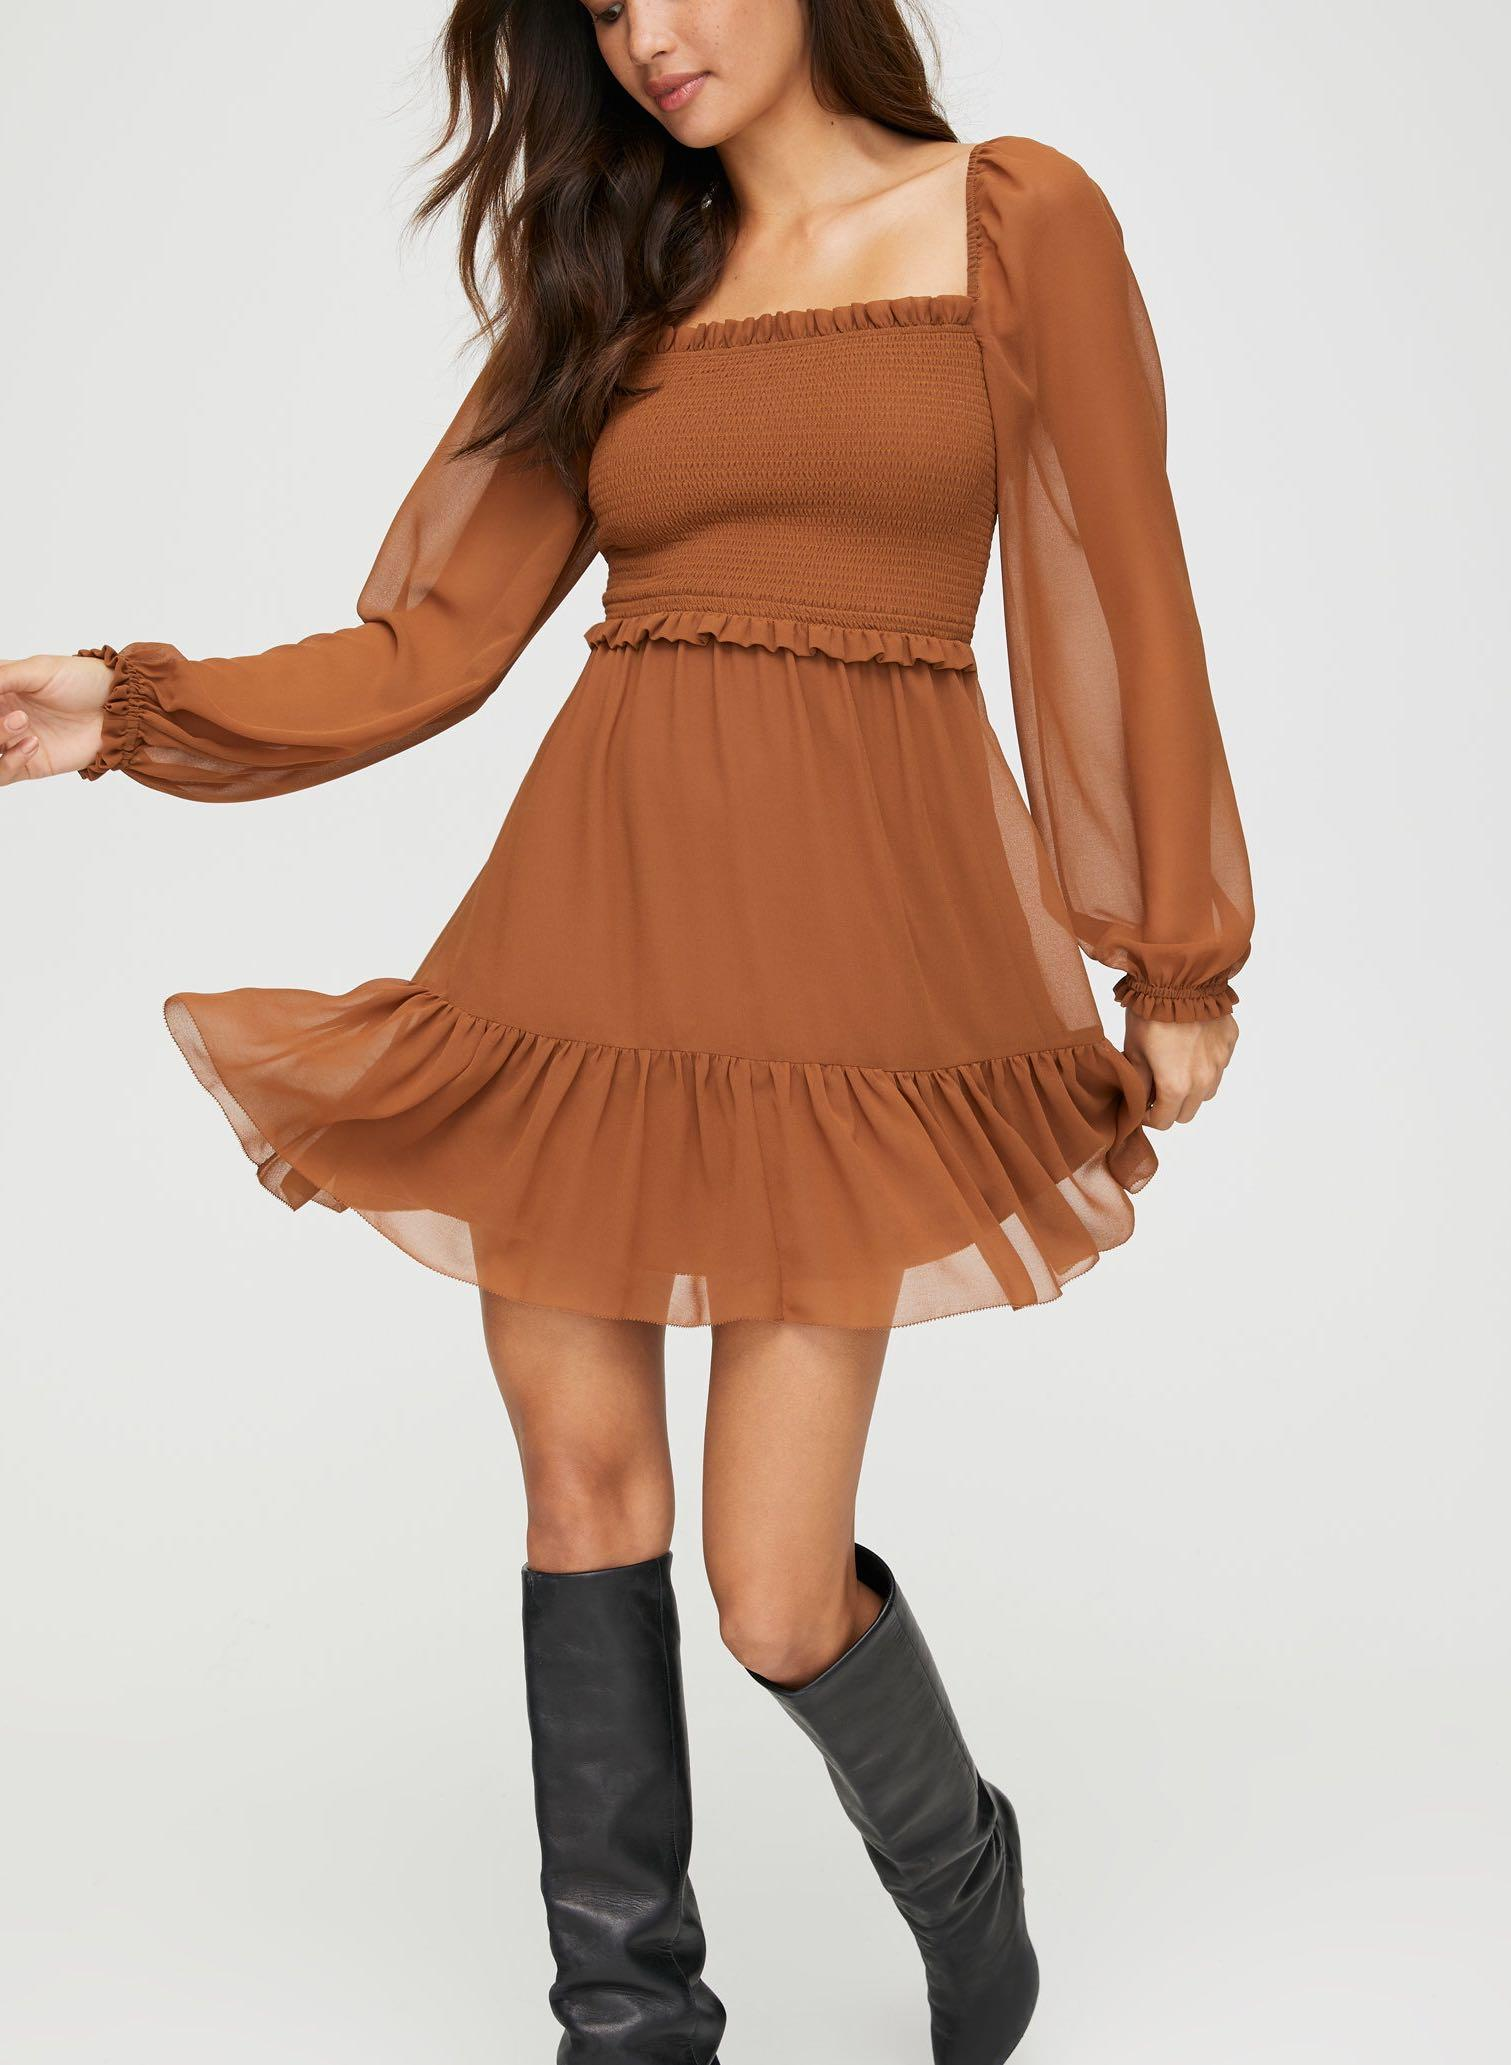 NWT Aritzia Wilfred Tempest Dress in Terrazzo Brown Size Small